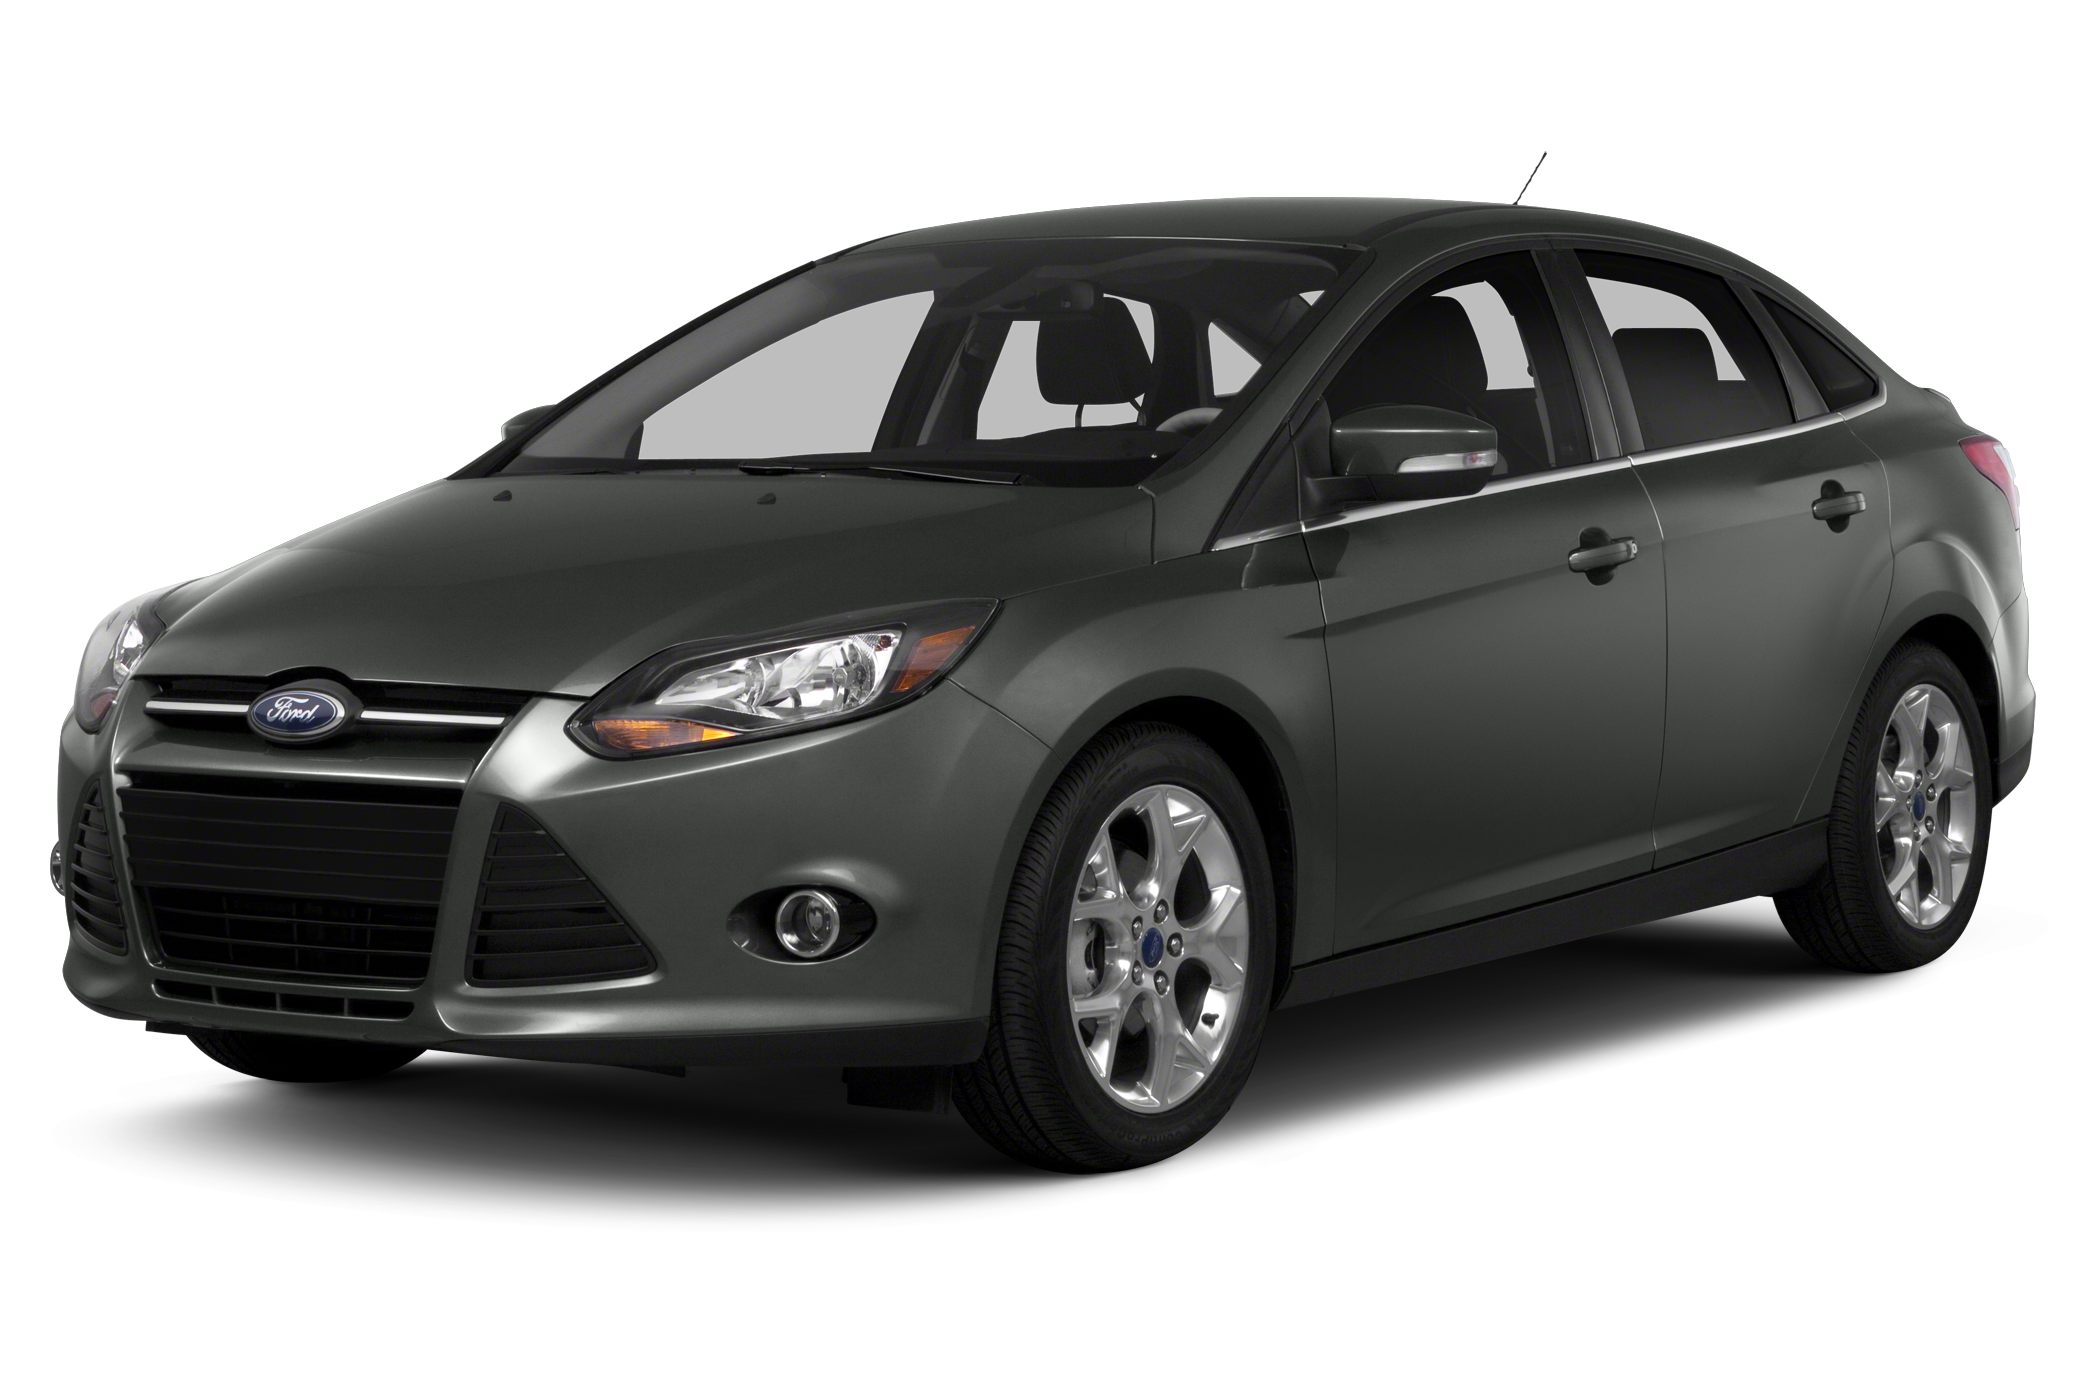 2014 Ford Focus SE Hatchback for sale in El Paso for $14,995 with 21,348 miles